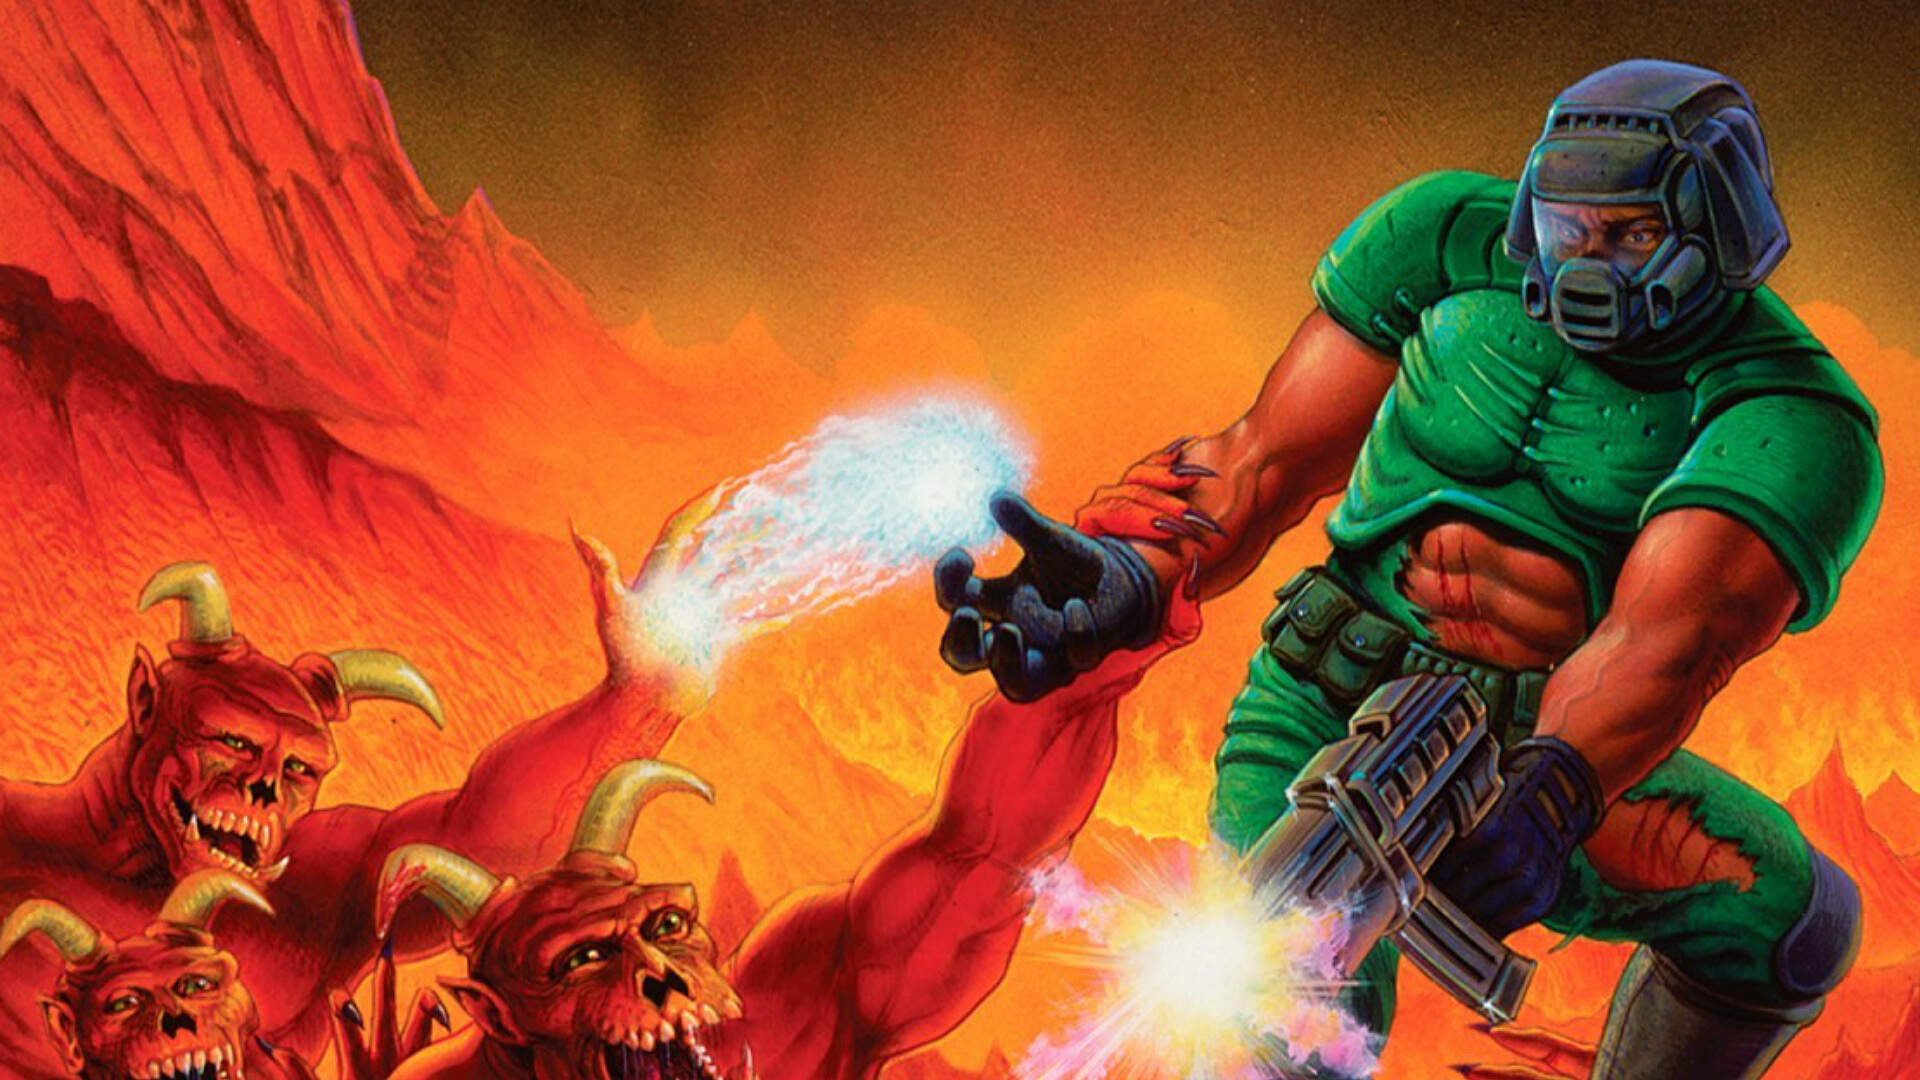 Bethesda Announces Exclusive Doom Eternal Skins for Owners of Classic Doom Ports